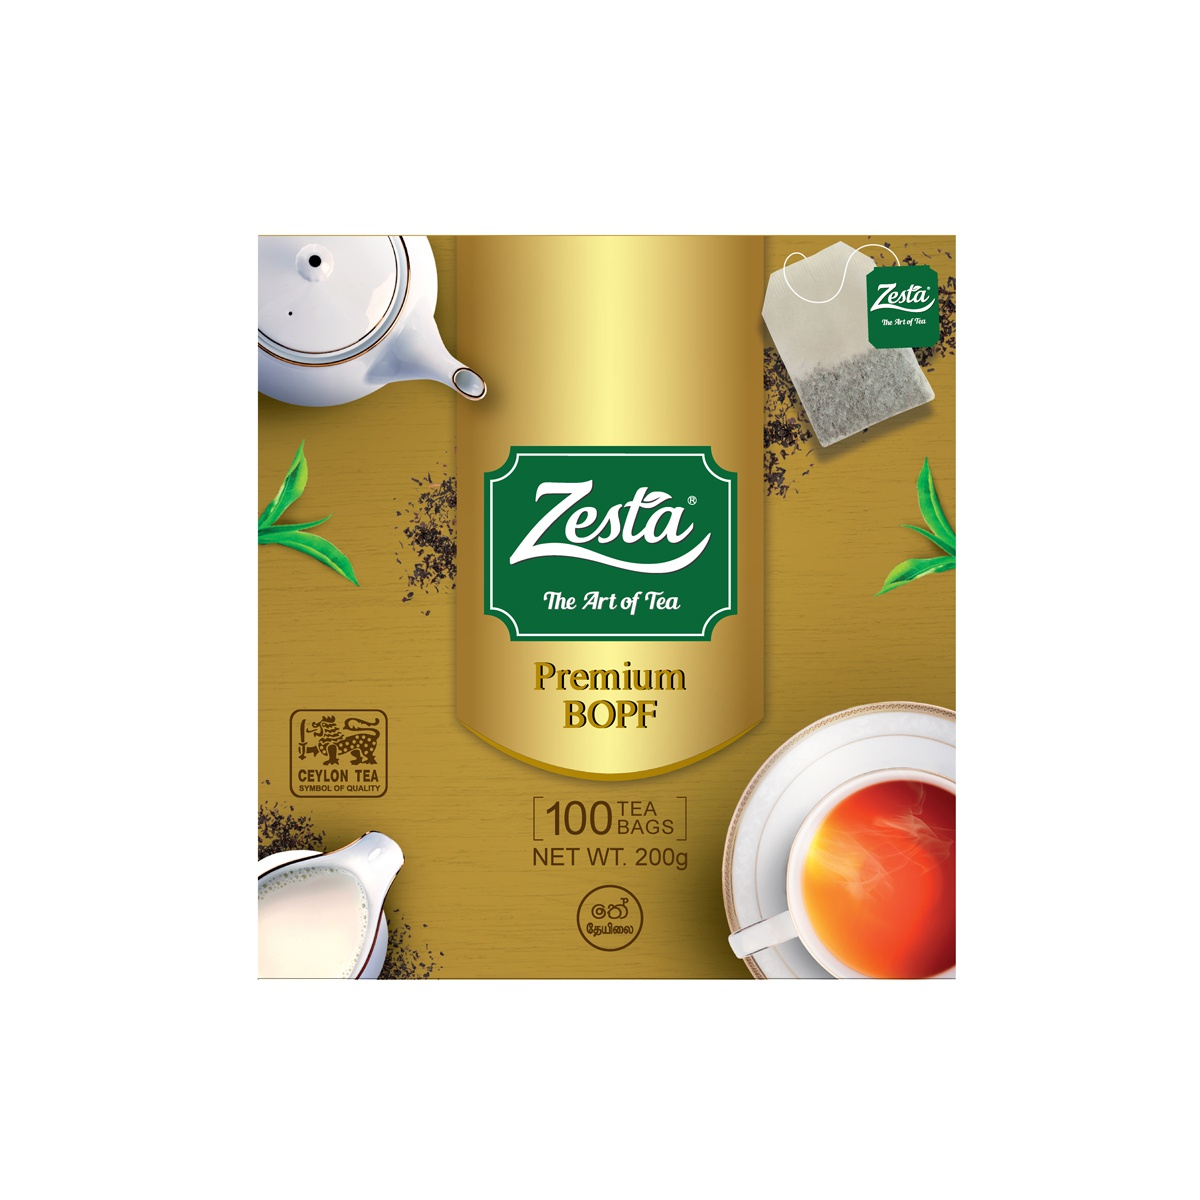 Zesta Tea 100s 200g - in Sri Lanka